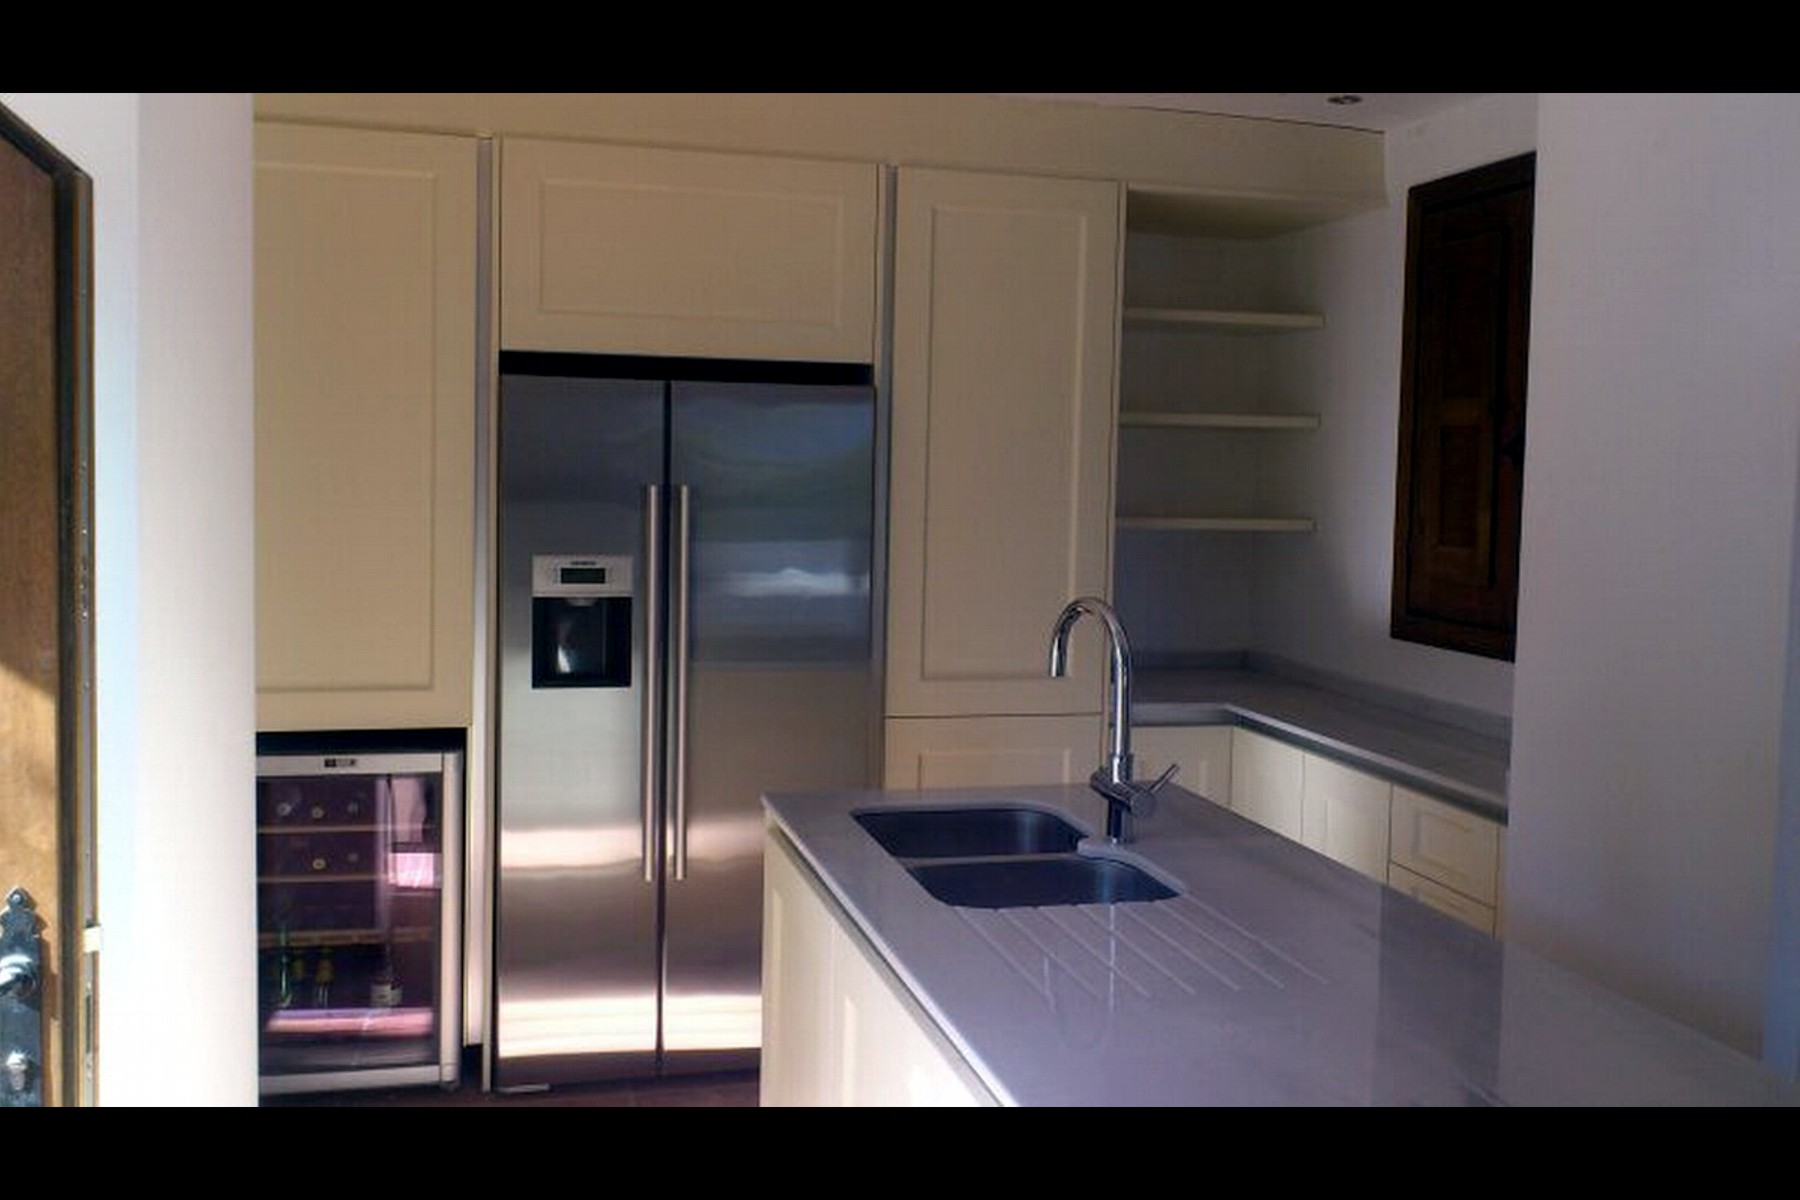 Imaginarq-422-Vivienda-unifamiliar-Altea-Alicante-18A